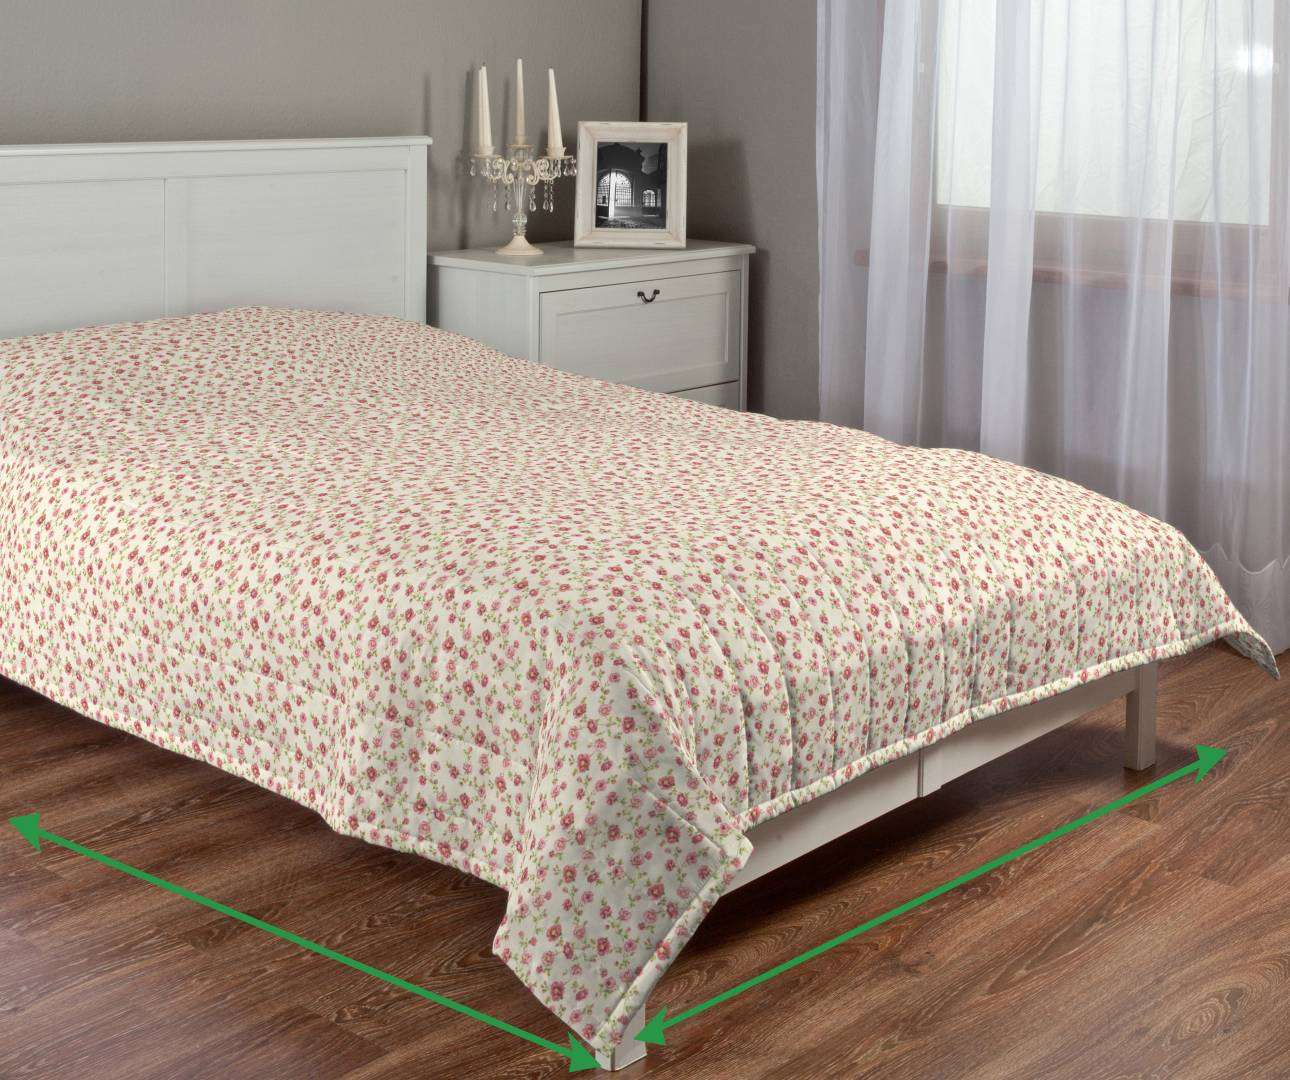 Quilted throw (vertical quilt pattern) in collection Ashley, fabric: 137-49